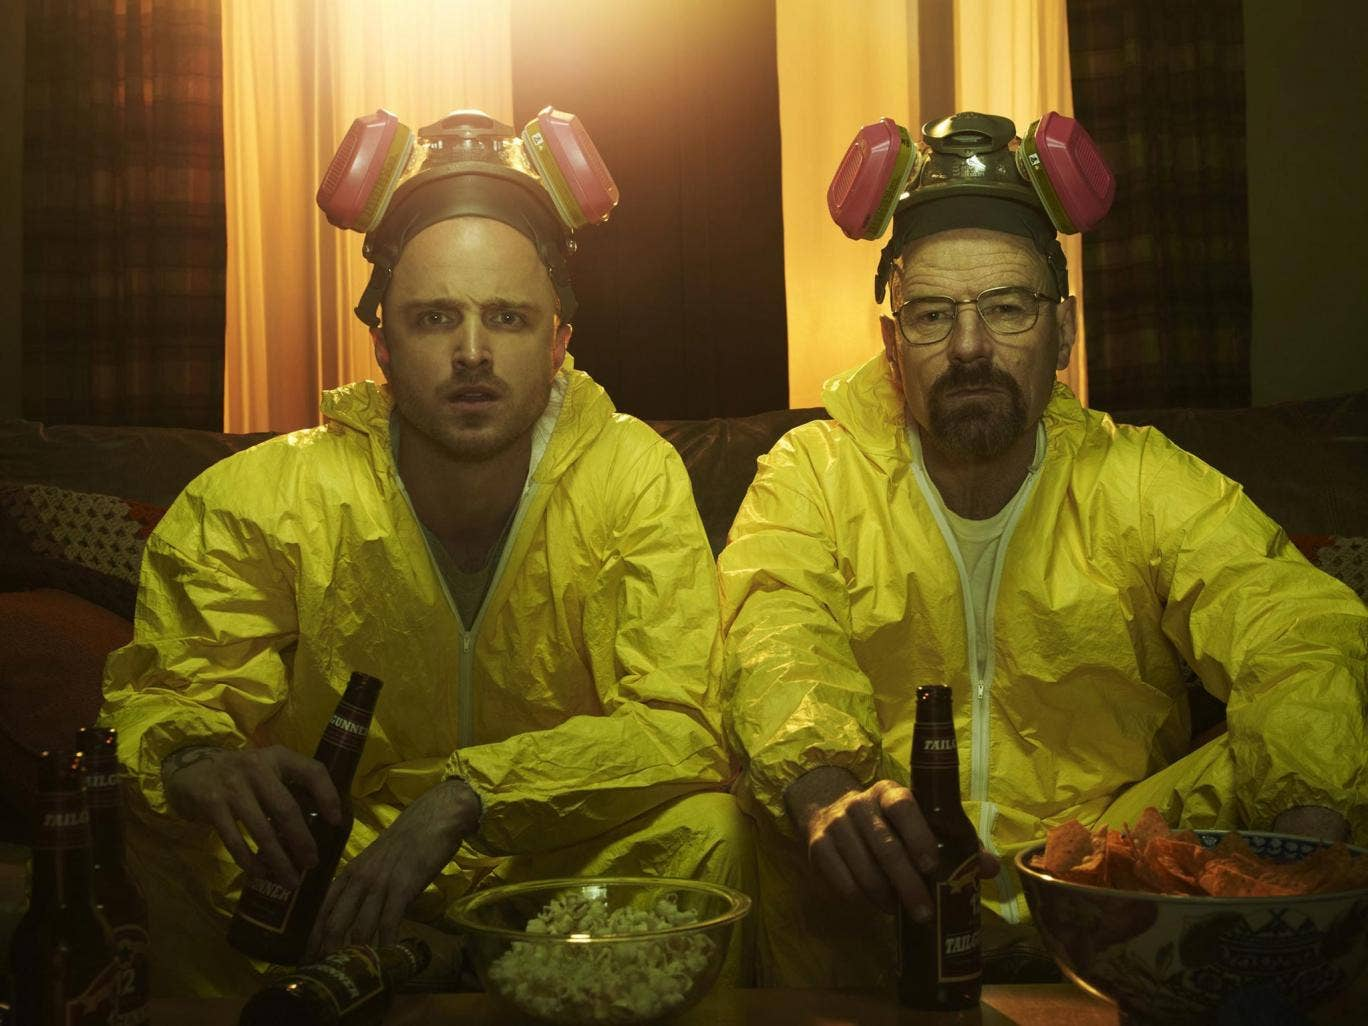 In 2013, 58 baby boys were named Walter in the wake of Breaking Bad's success